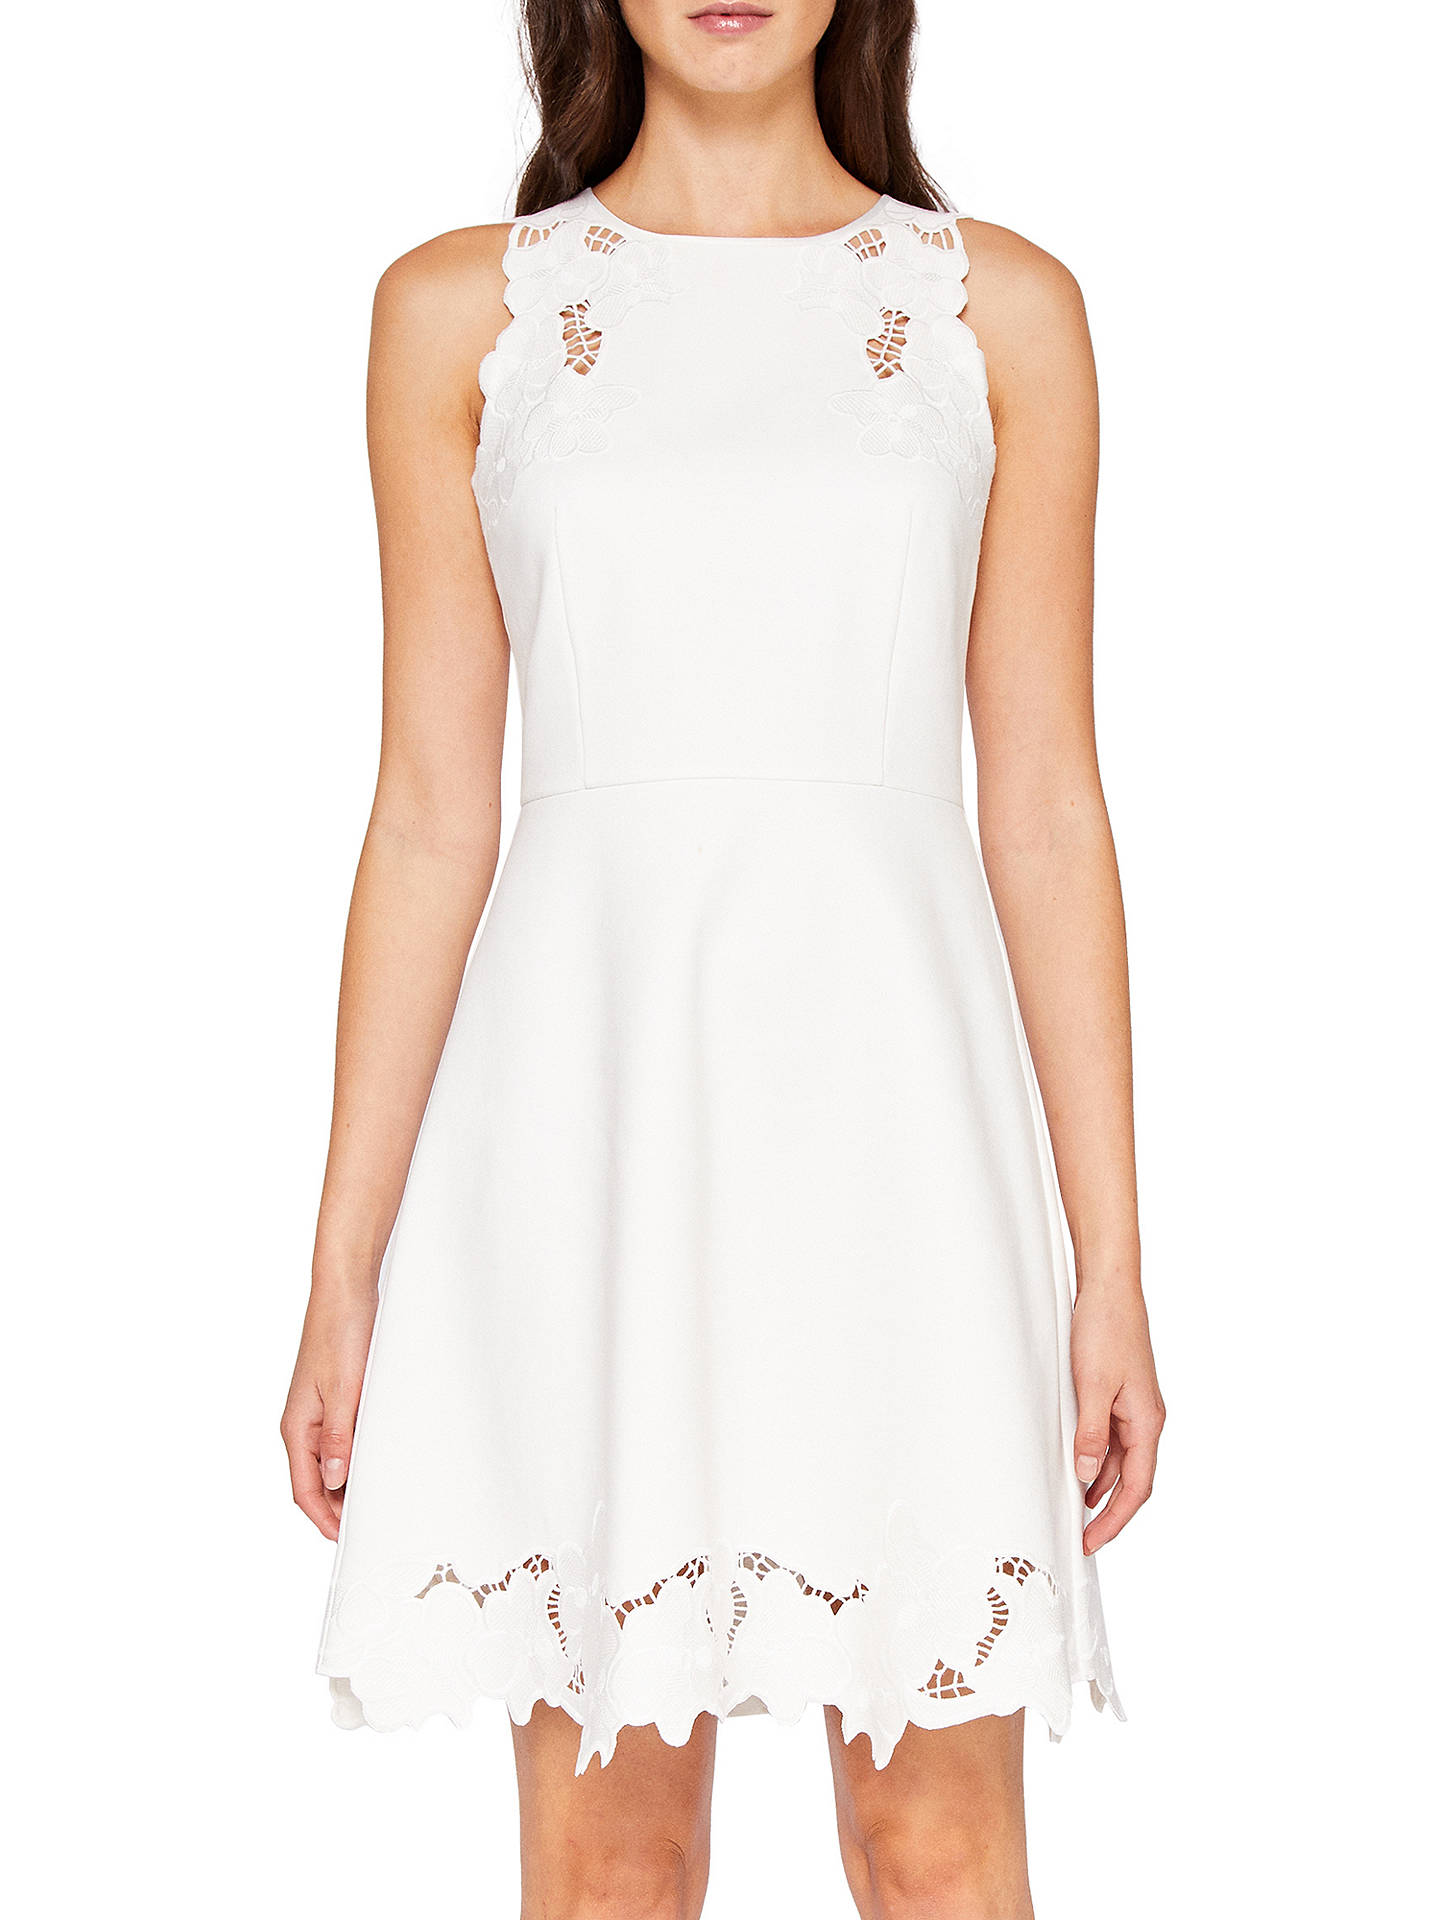 43a48f2f55 Ted Baker Emmona Embroidered Skater Dress at John Lewis   Partners